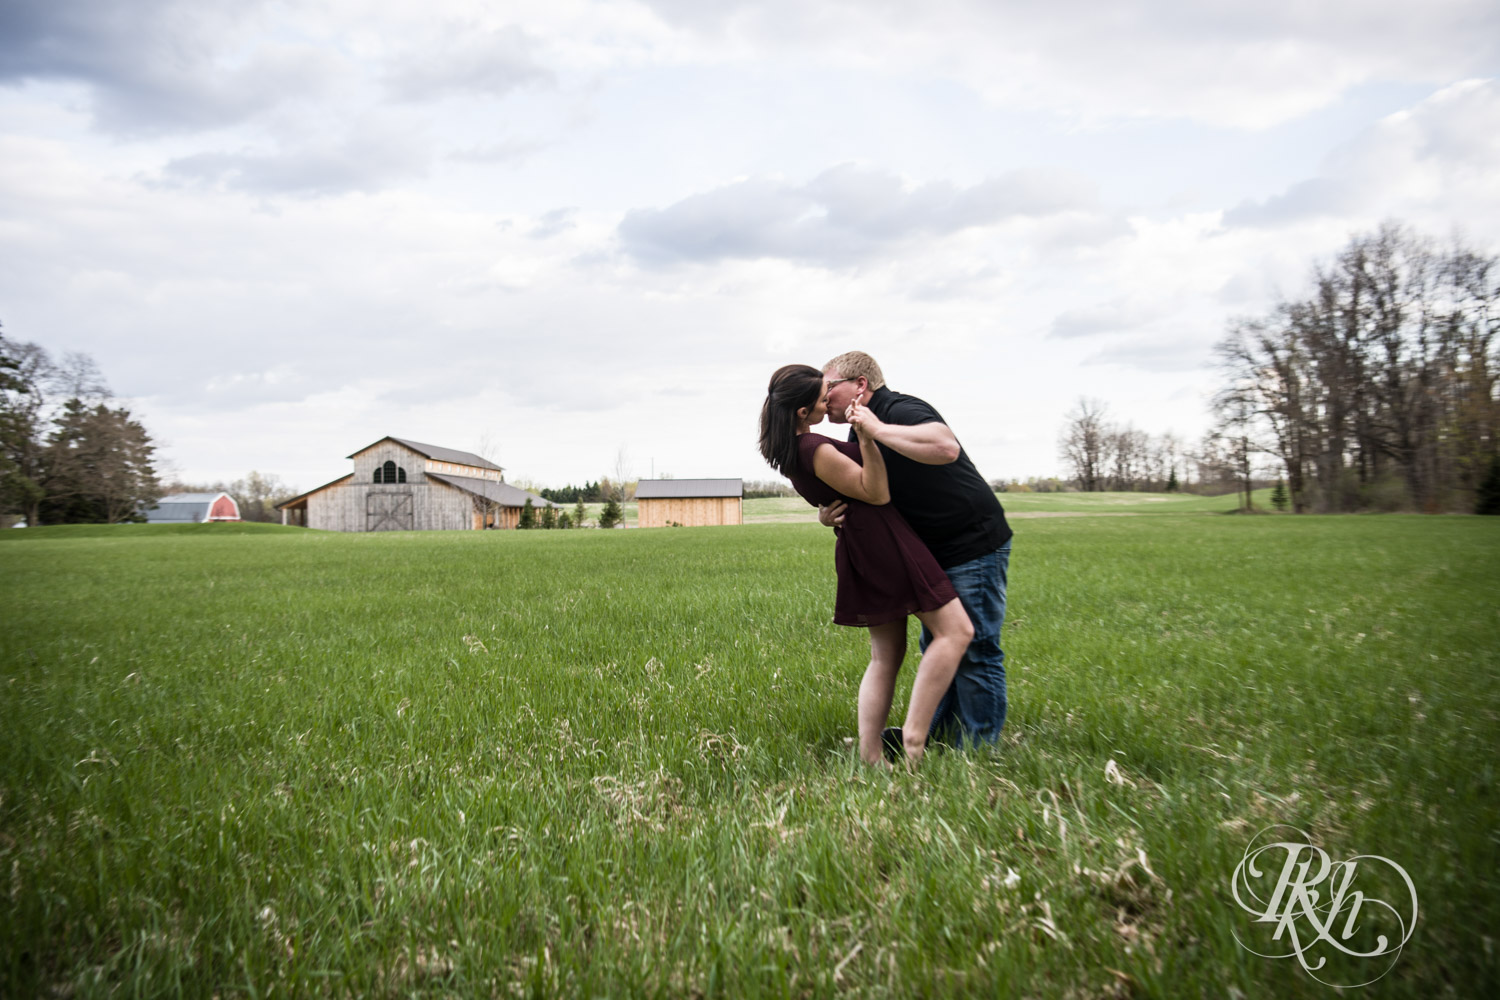 Chelsey & Erik - Minnesota Engagement Photography - Creekside Farm and Events - Rush City - RKH Images  (12 of 18).jpg